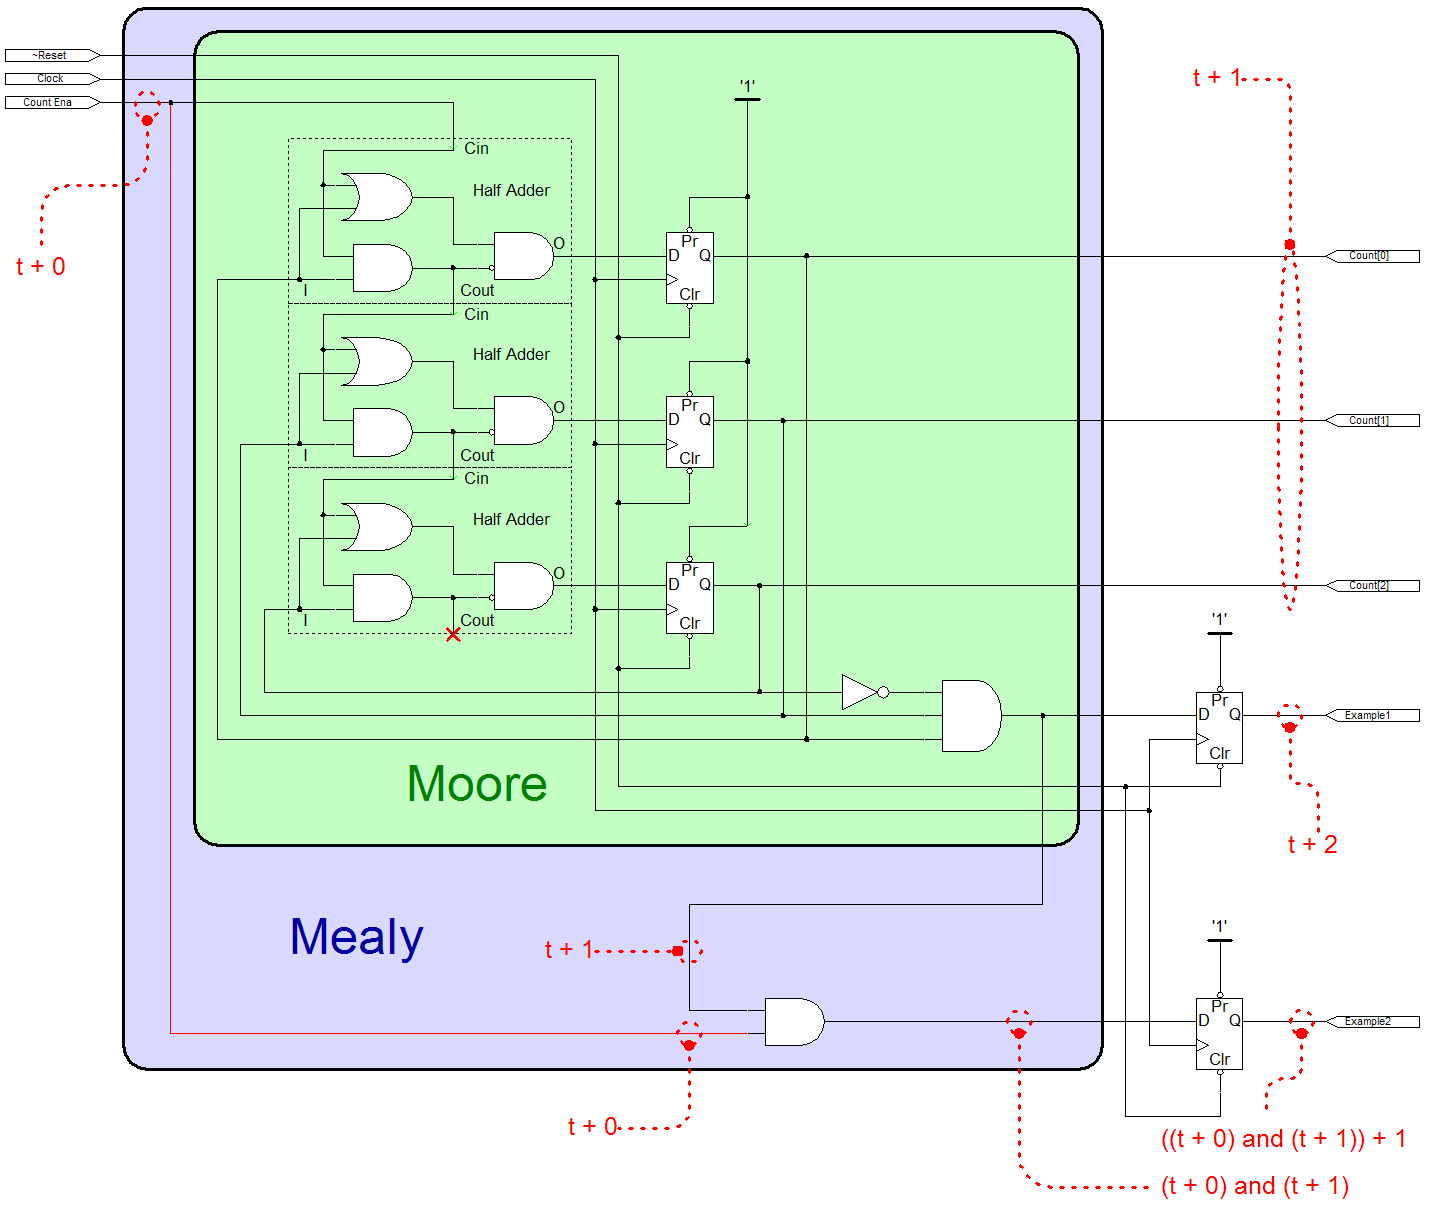 A schematic demonstrating Moore and Mealy machines